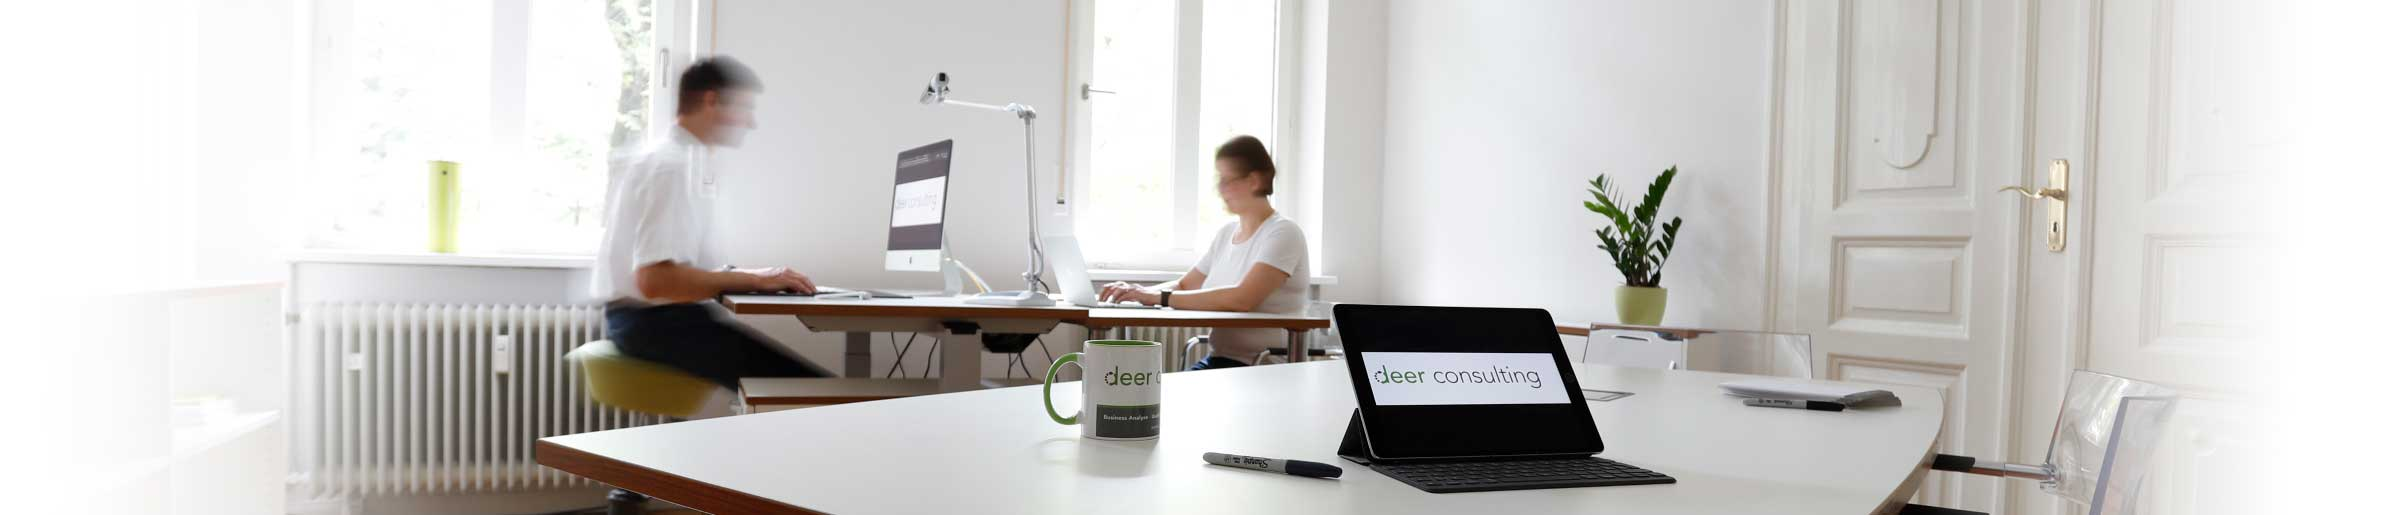 deer consulting GmbH, Fürth, Business Analyse, Usability Engineering, Web und Social Media